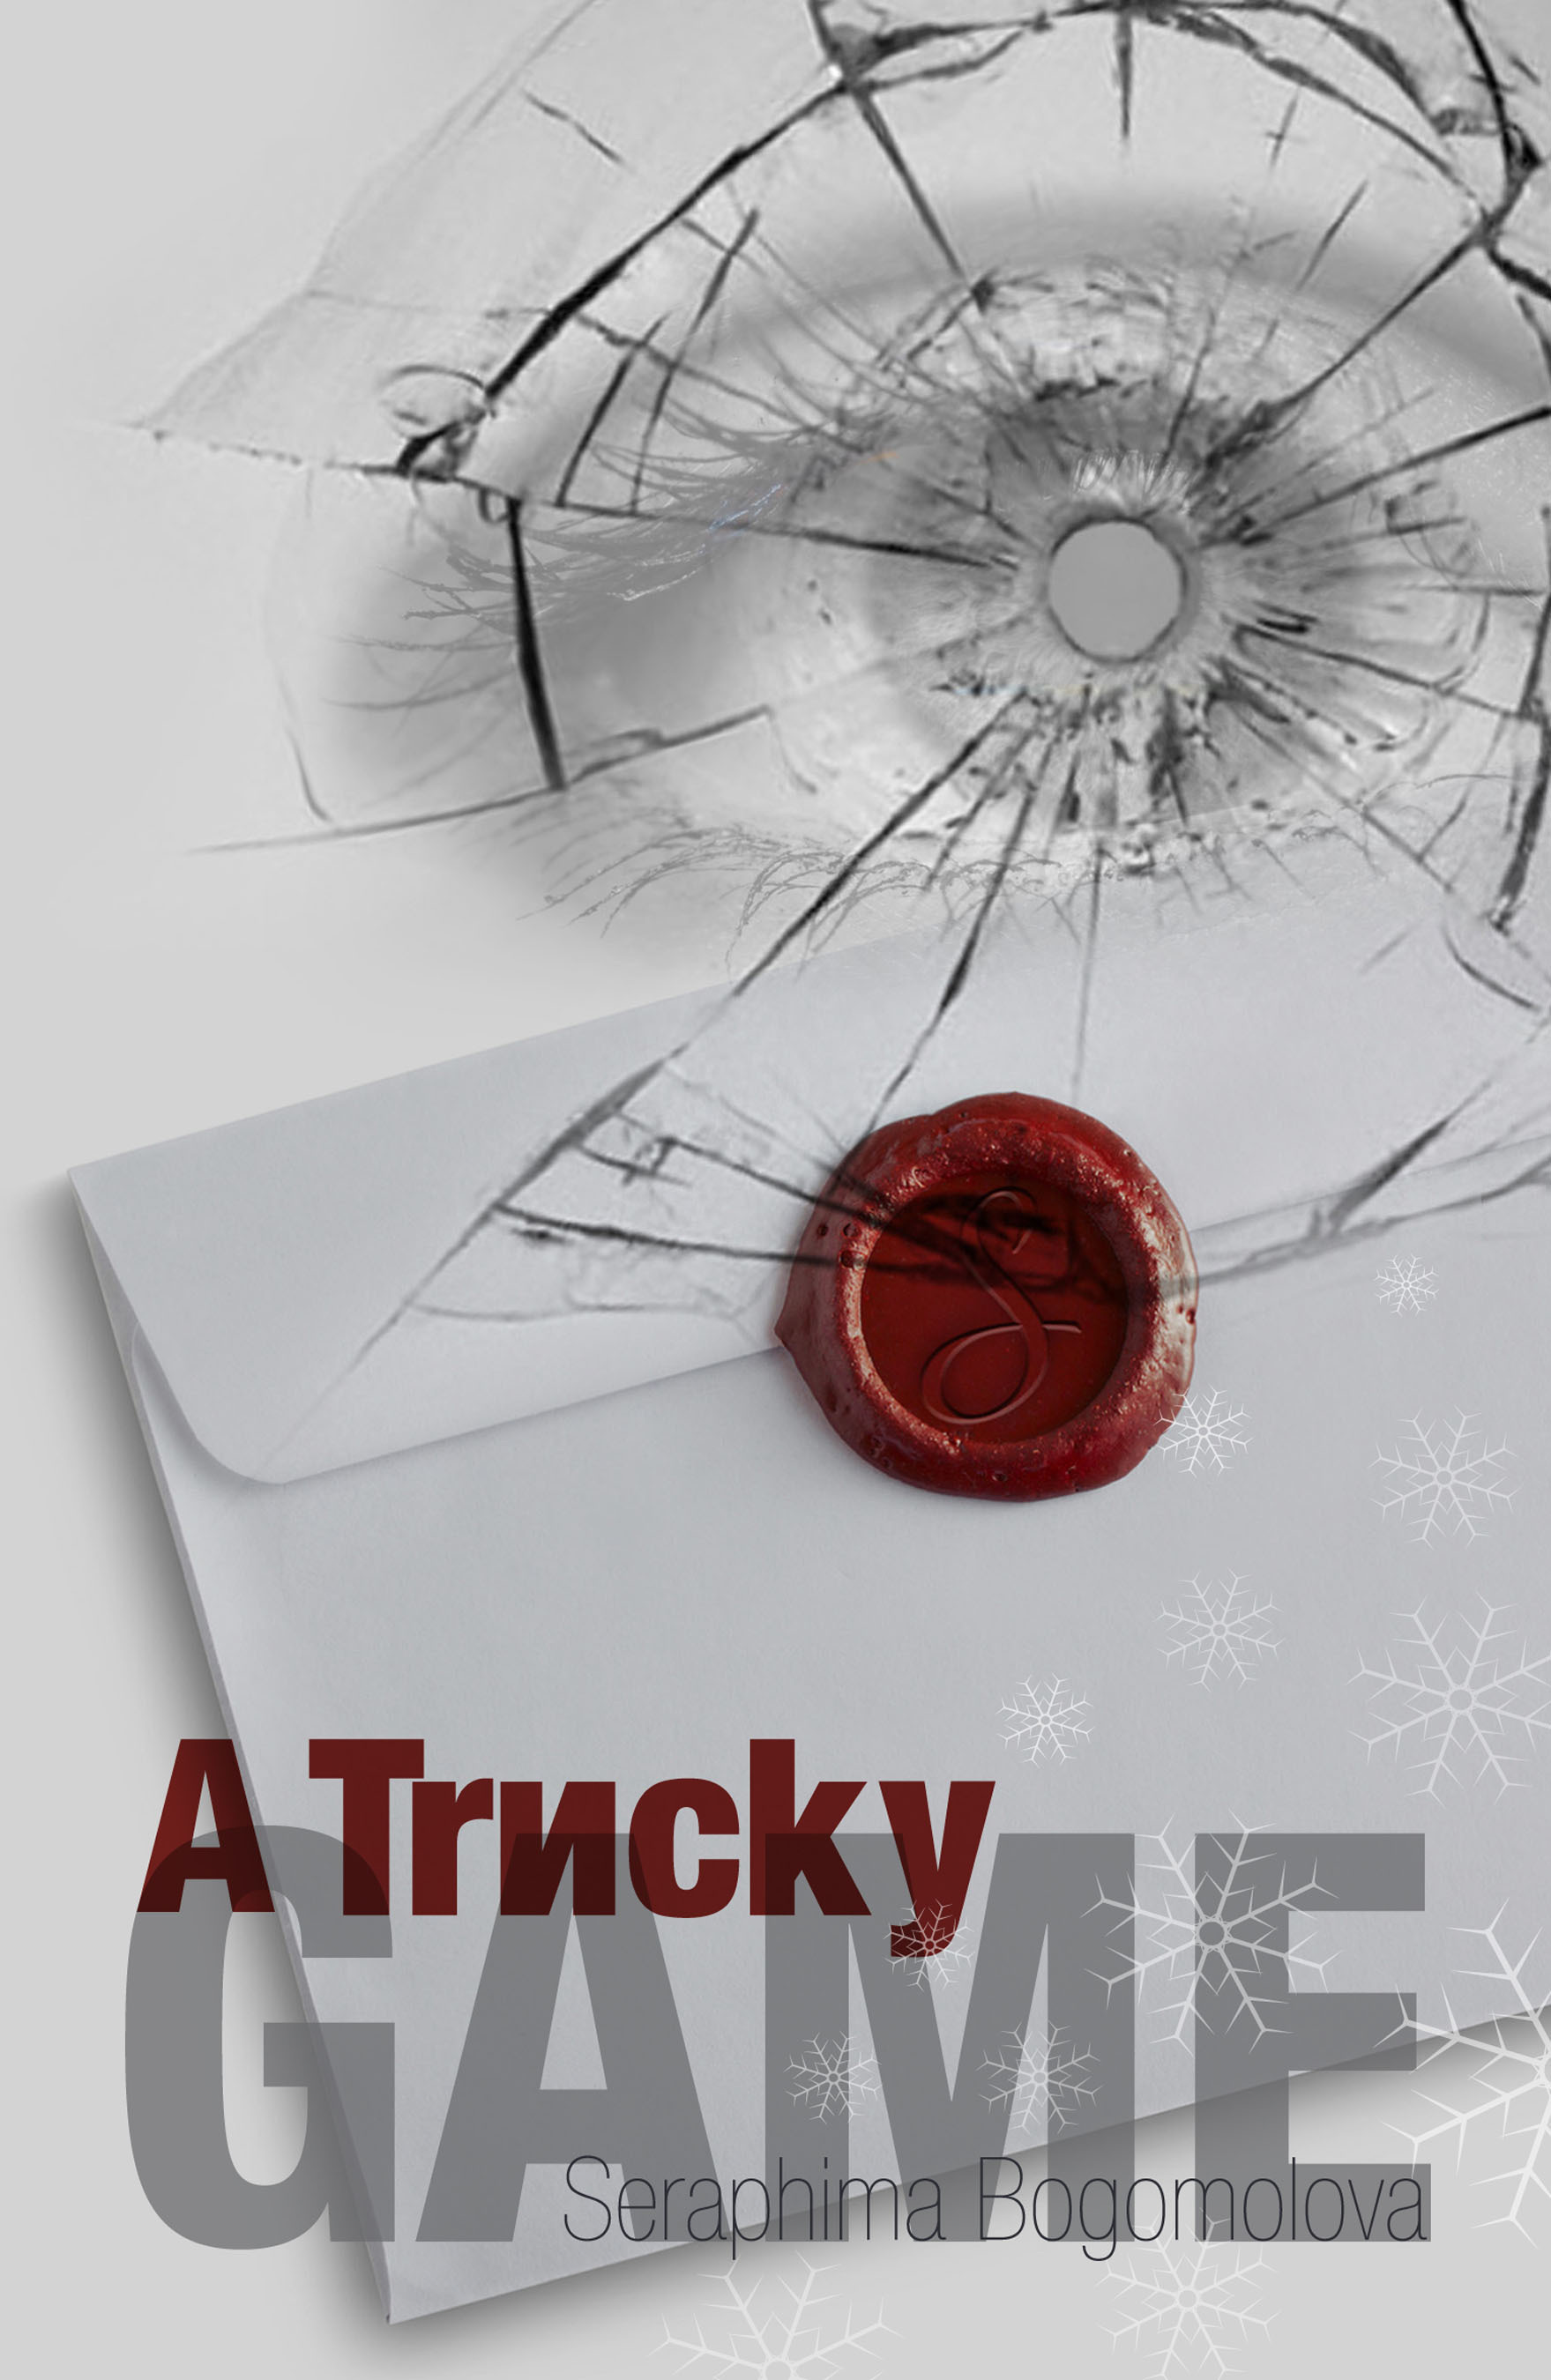 Seraphima Bogomolova Releases New Psychological Thriller, A TRICKY GAME